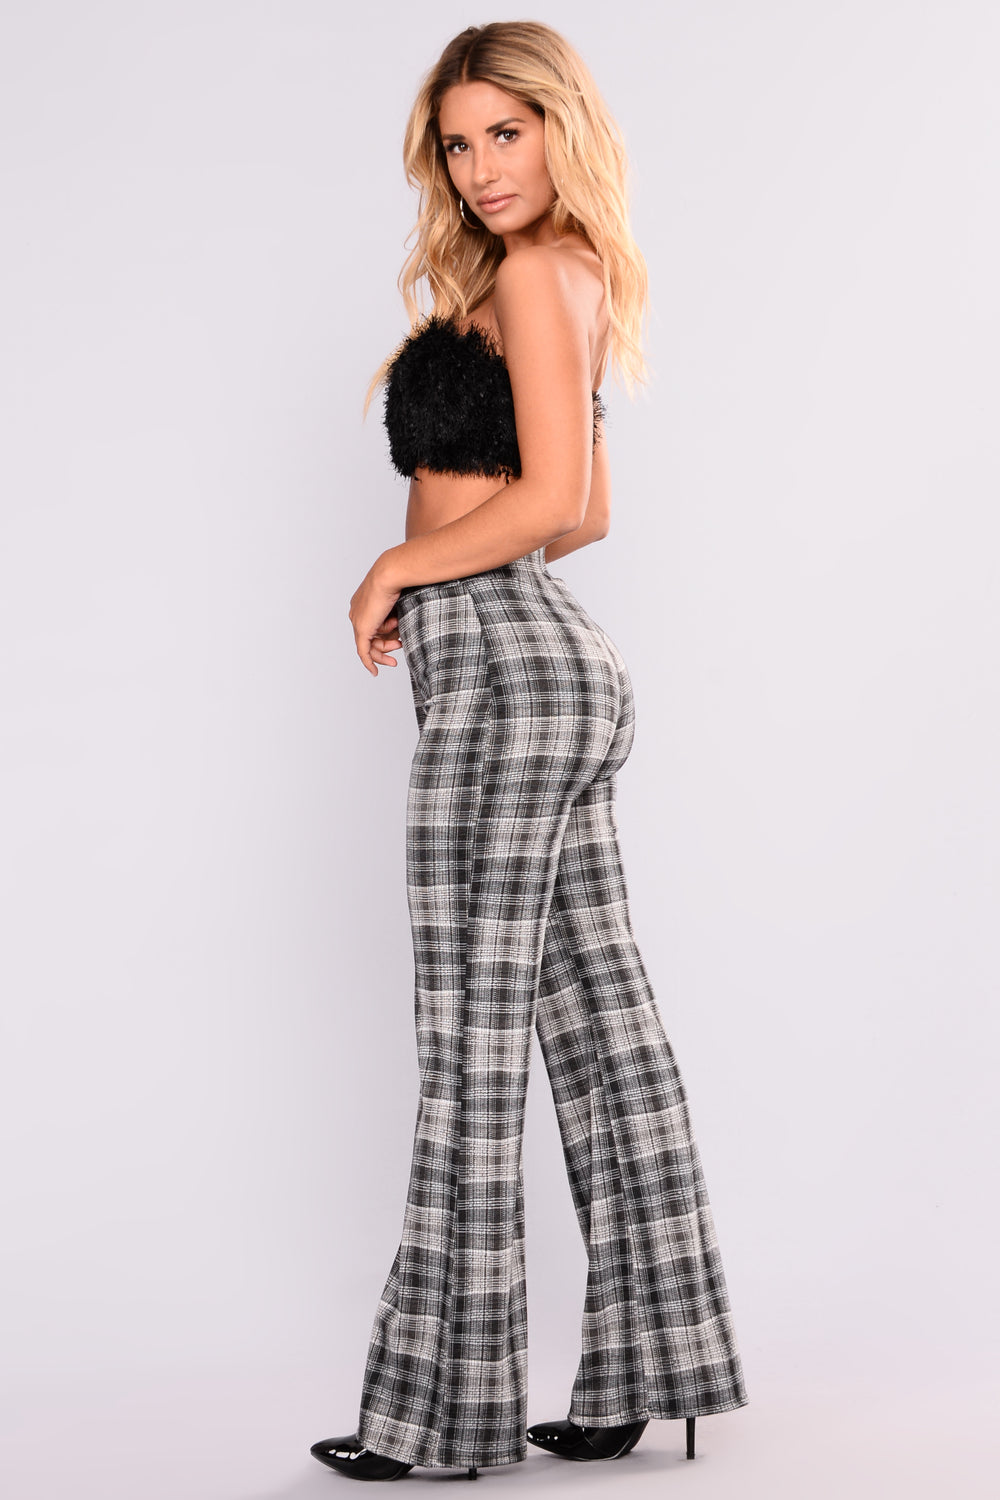 Rosiella Plaid Pants - Black